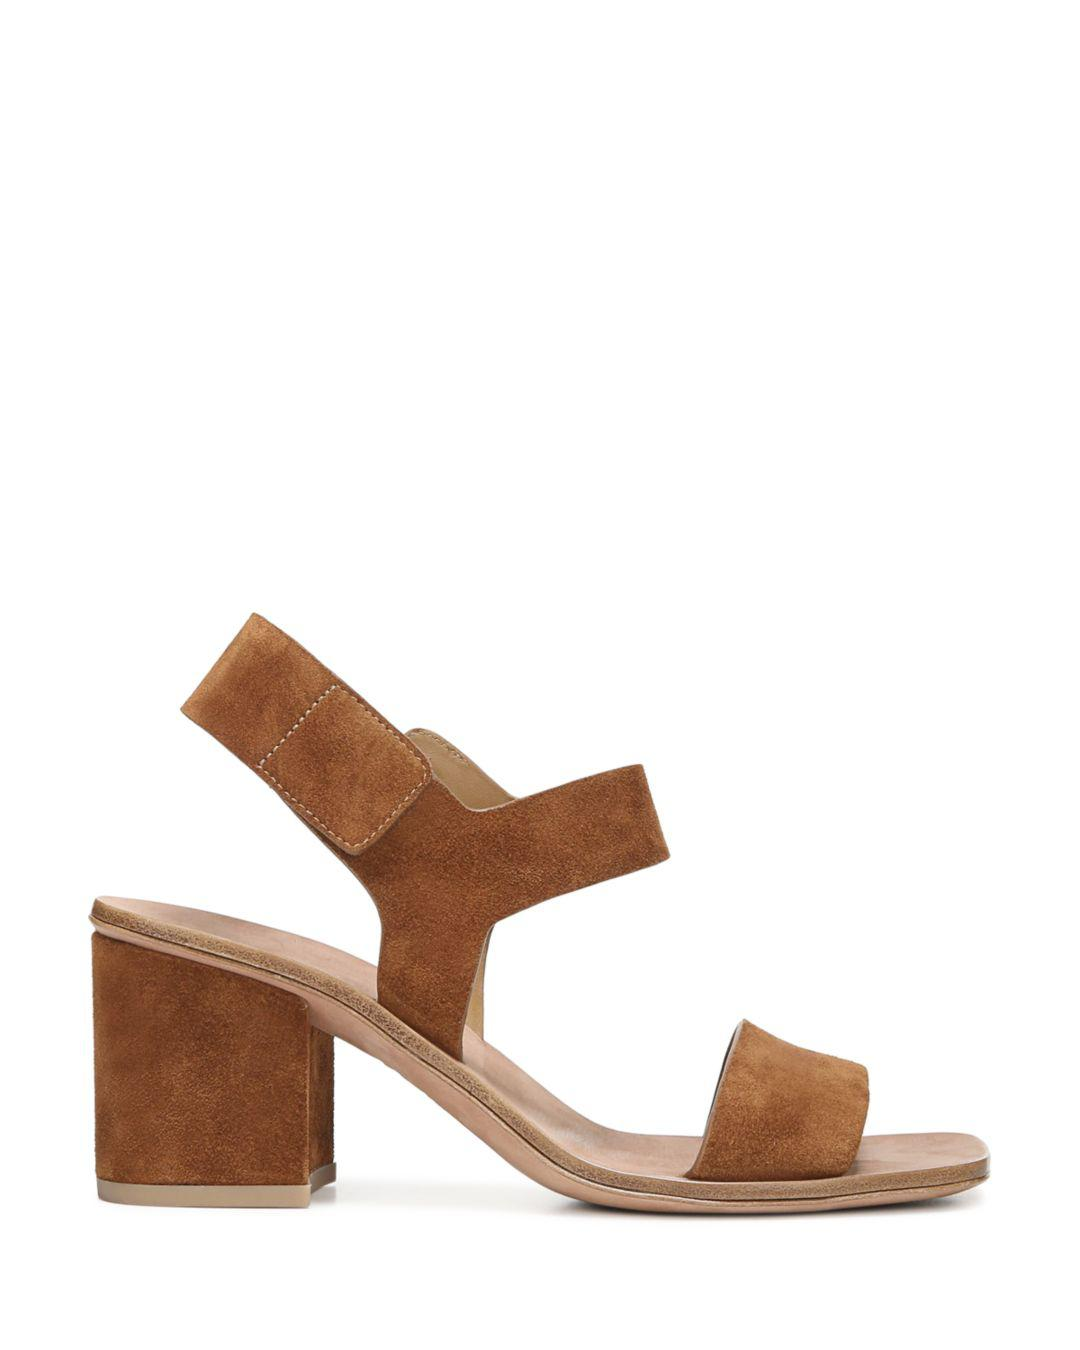 9c0e819791e Lyst - Via Spiga Women s Kamille Suede Block Heel Ankle Strap Sandals in  Brown - Save 19%